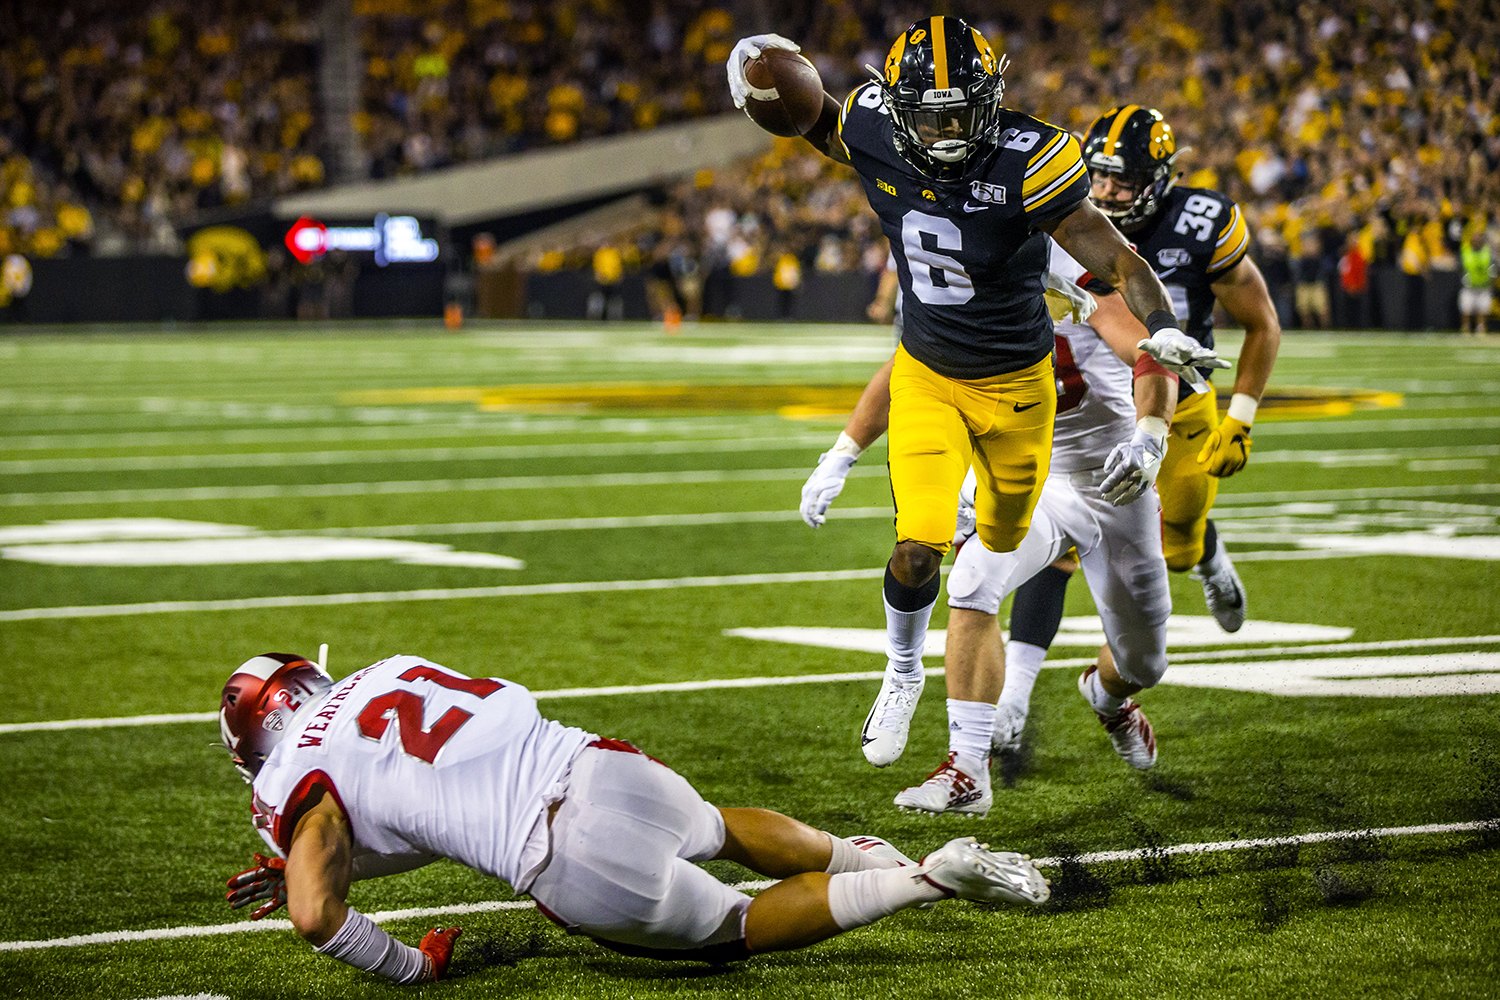 Iowa wide receiver Ihmir Smith-Marsette jumps over Miami (Ohio) defensive back Sterling Weatherford during the Iowa football game against Miami (Ohio) at Kinnick Stadium on Saturday, August 31, 2019. The Hawkeyes defeated the Redhawks 38-14.